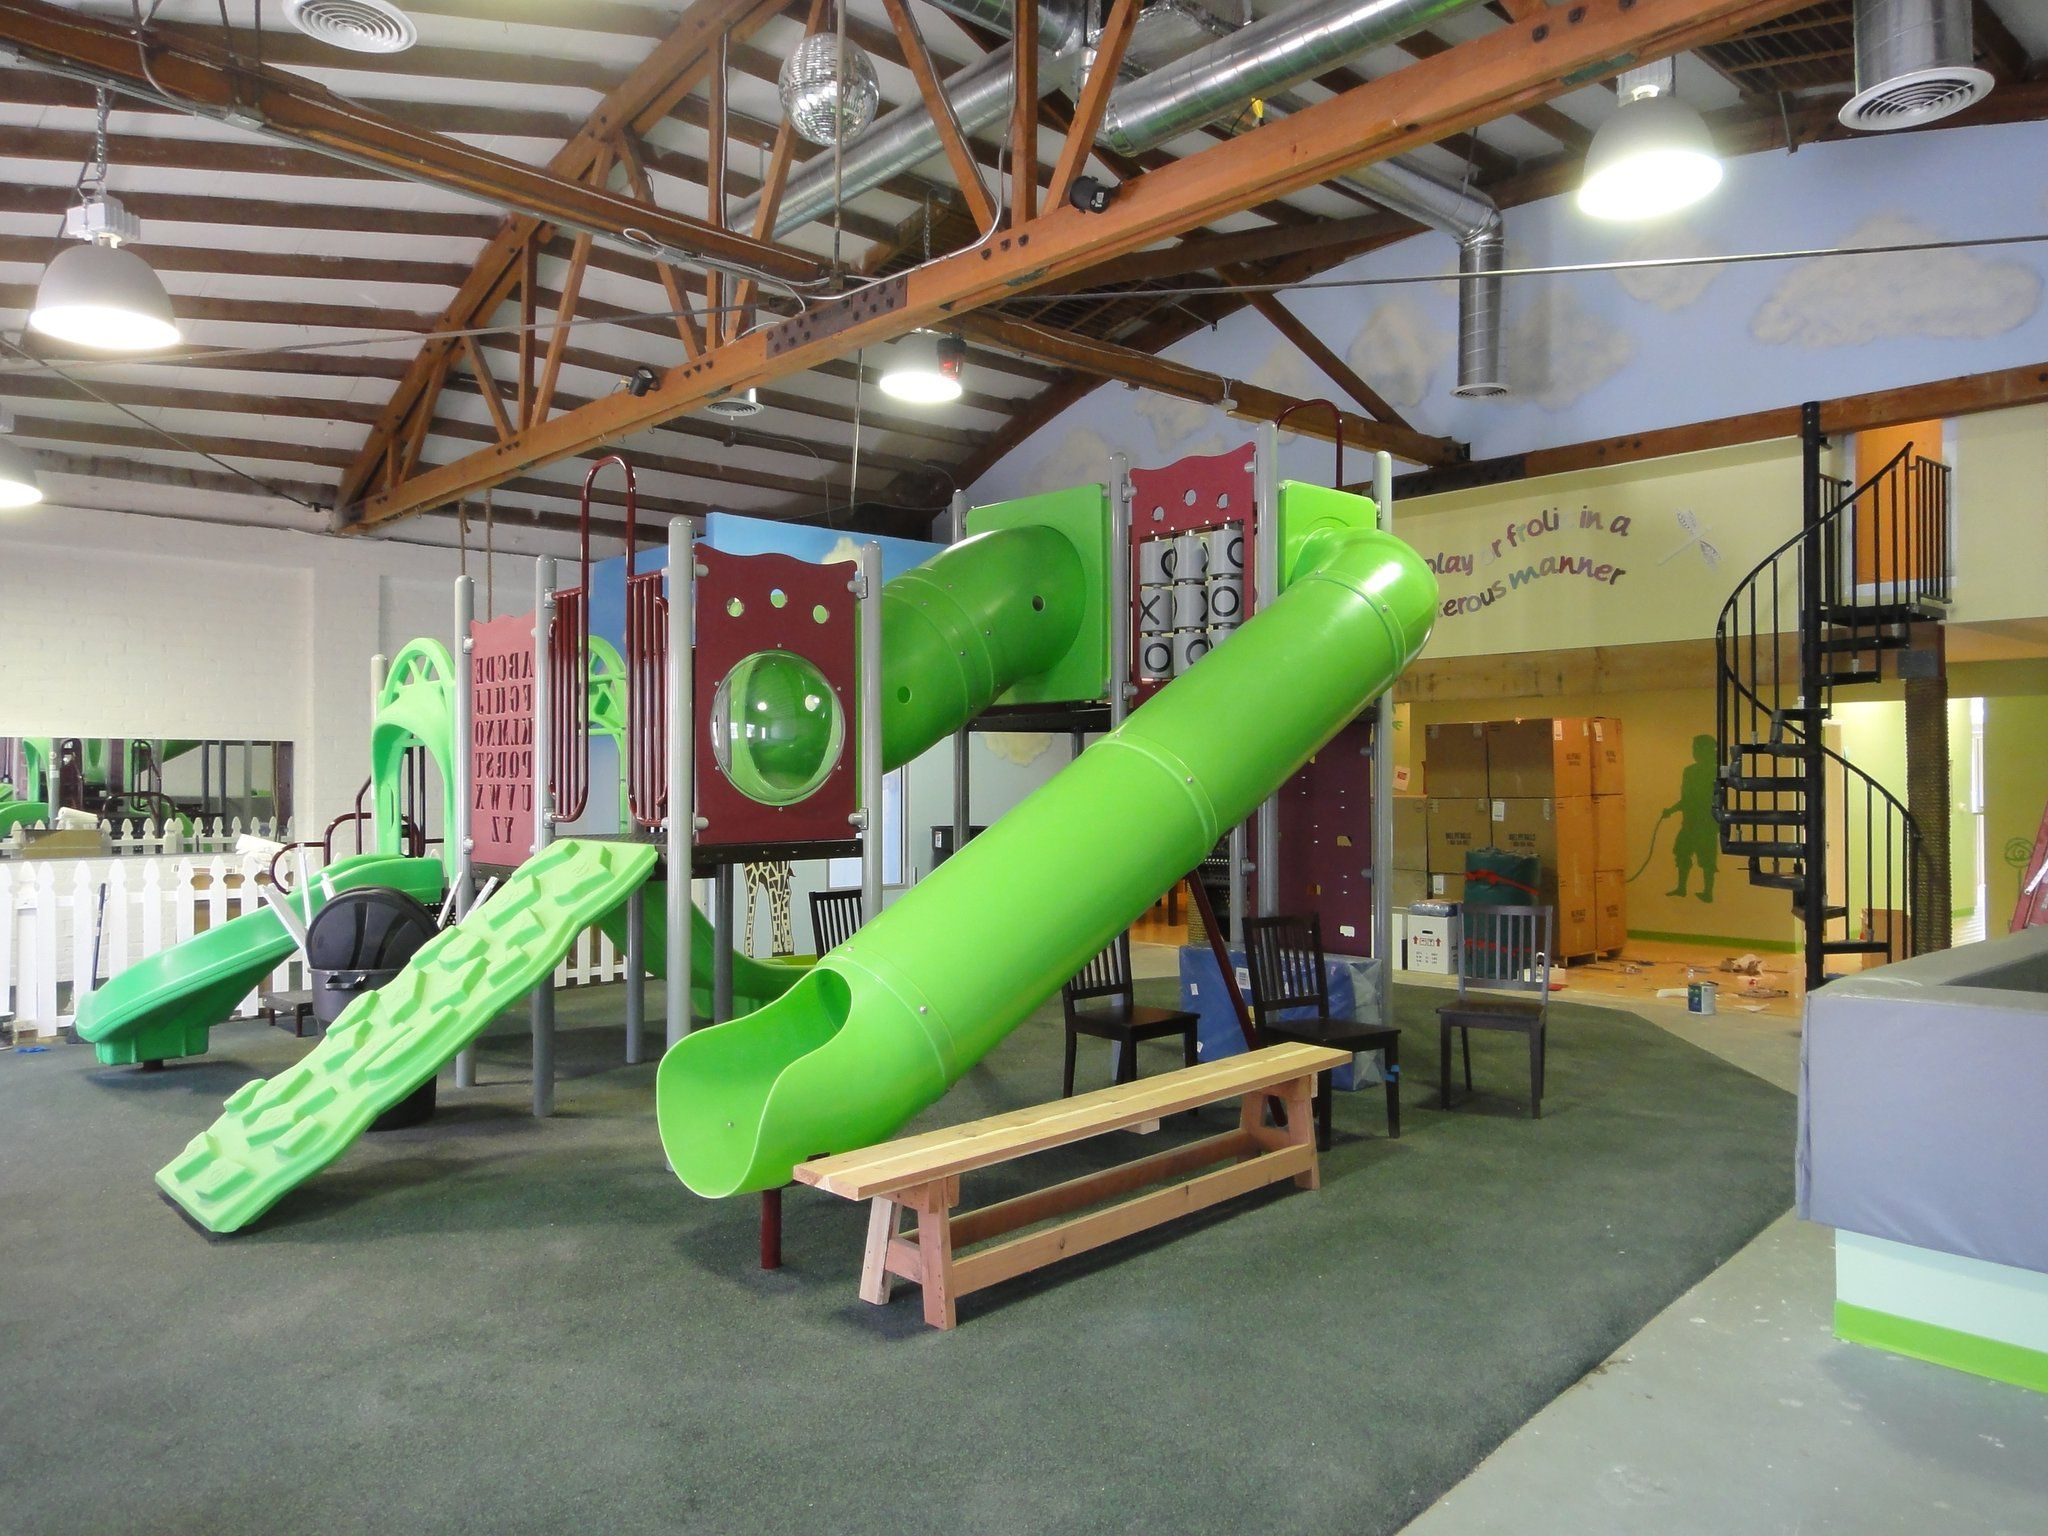 Indoor play center ideas diy on pinterest indoor for Indoor playground design ideas